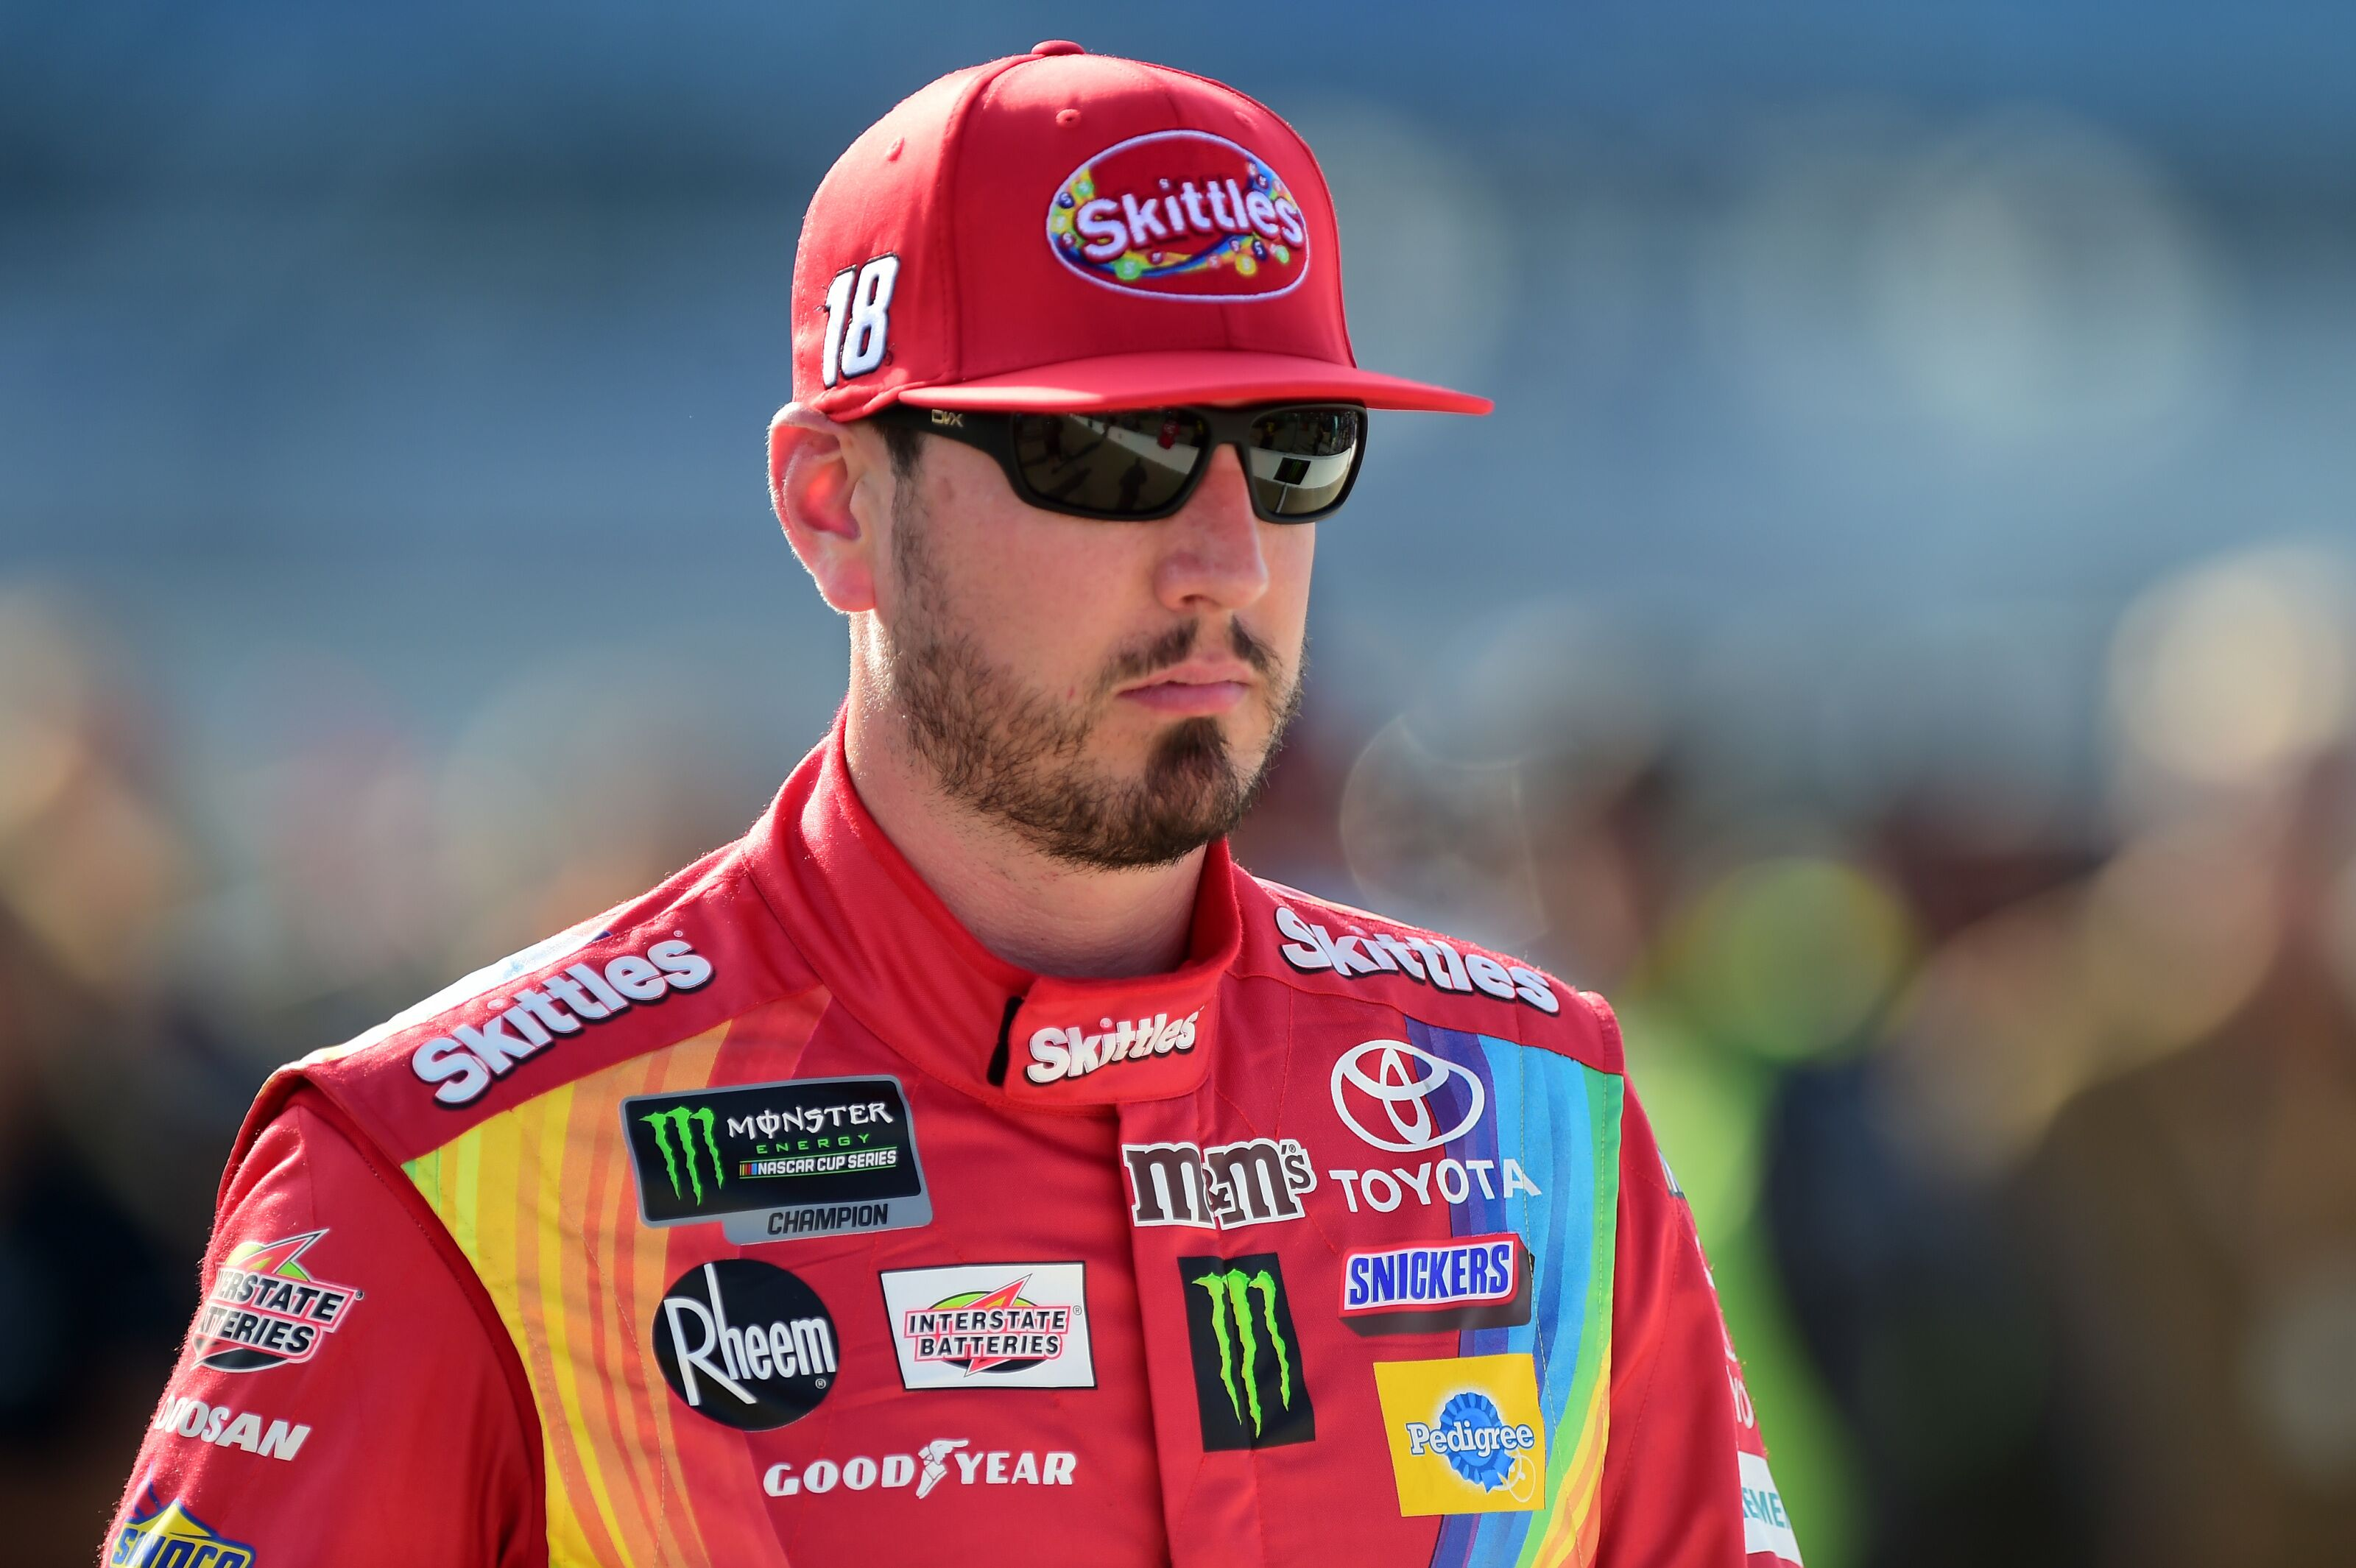 NASCAR's 4th place driver Kyle Busch effectively voted world's best